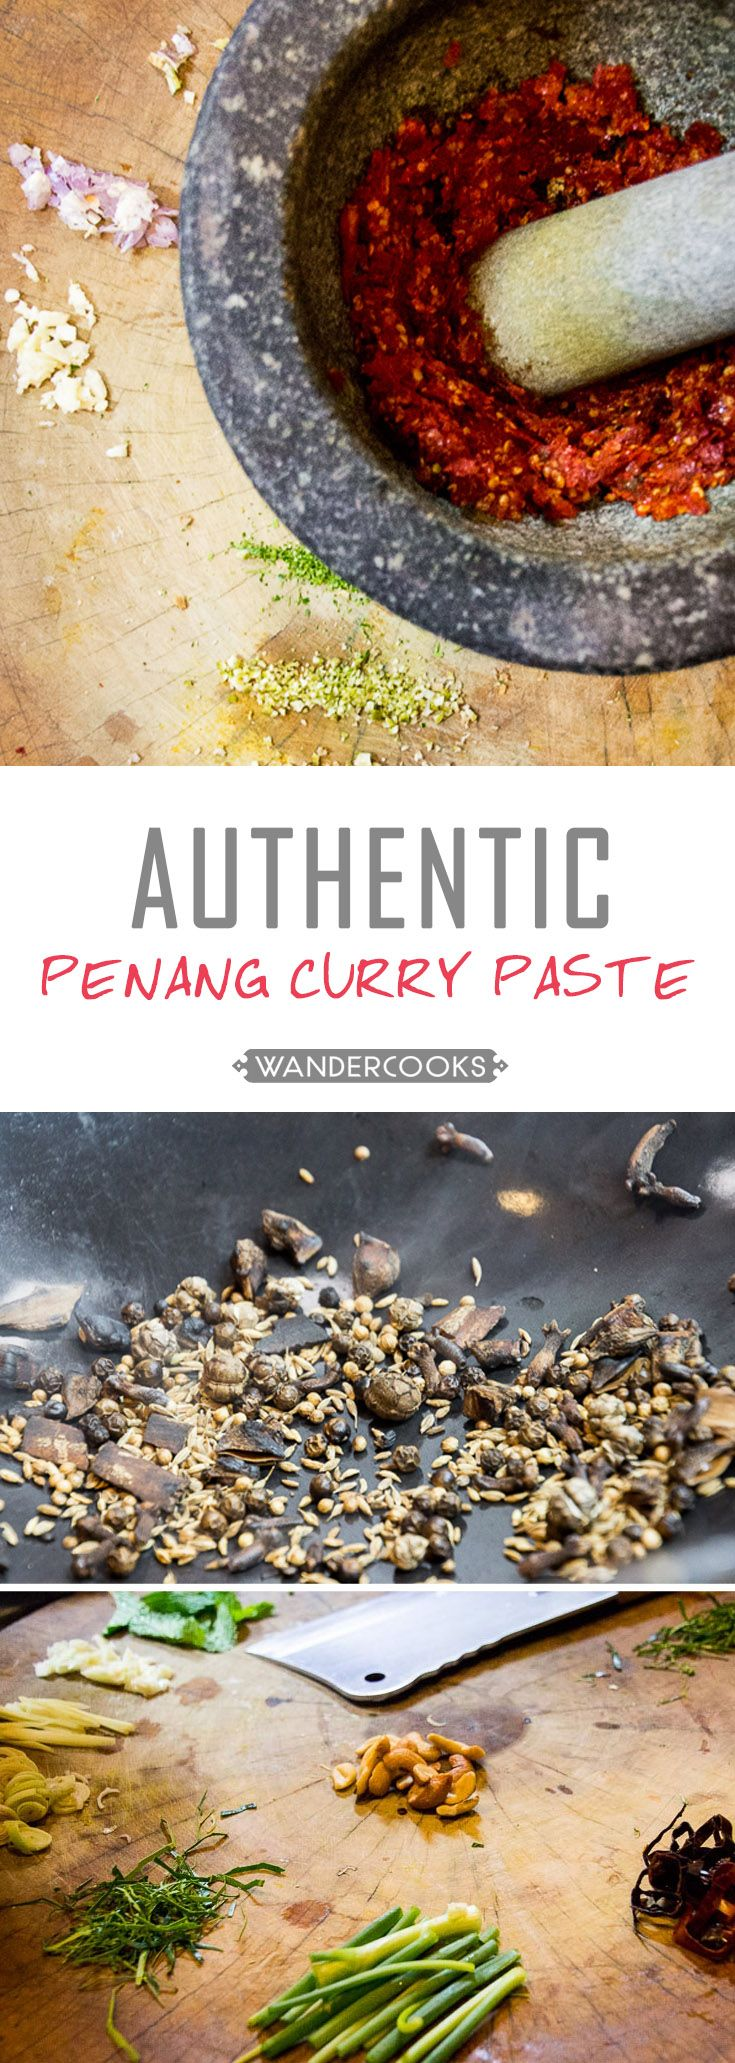 Throw away the store-bought curry pastes and whip a batch of your very own Authentic Panang Curry Paste that you can freeze for months. | wandercooks.com